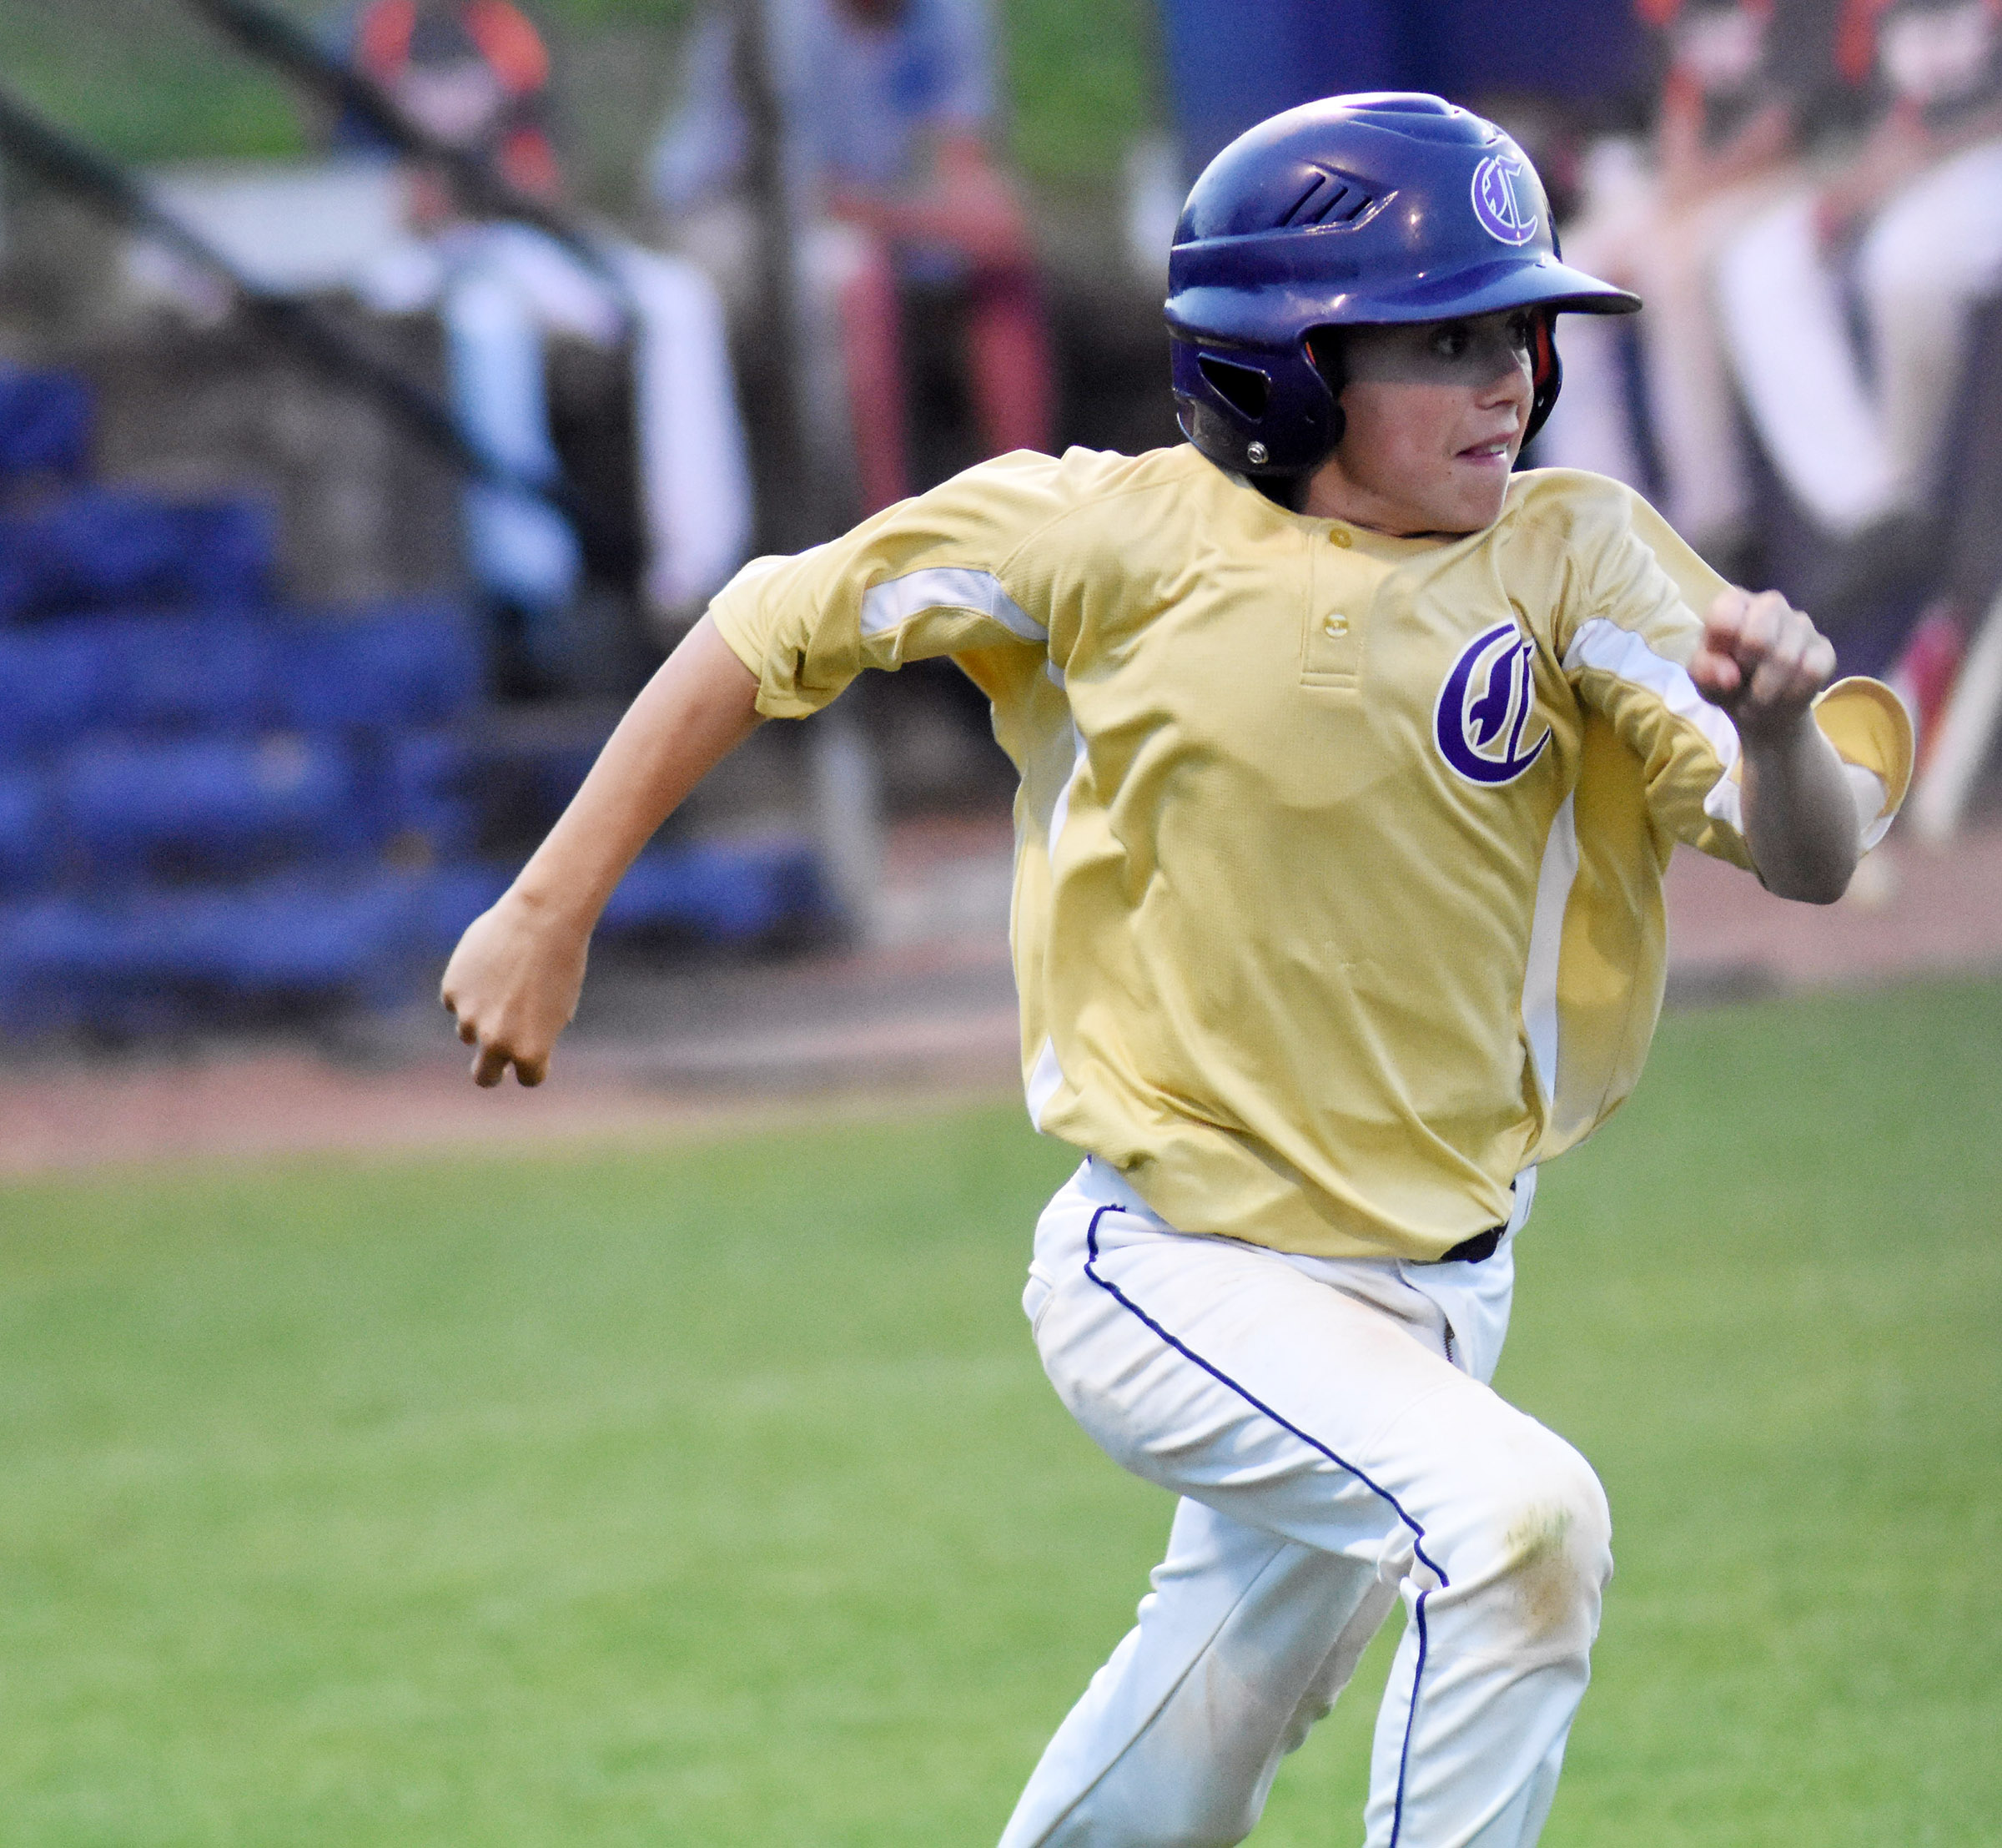 CMS seventh-grader Chase Hord runs to first.